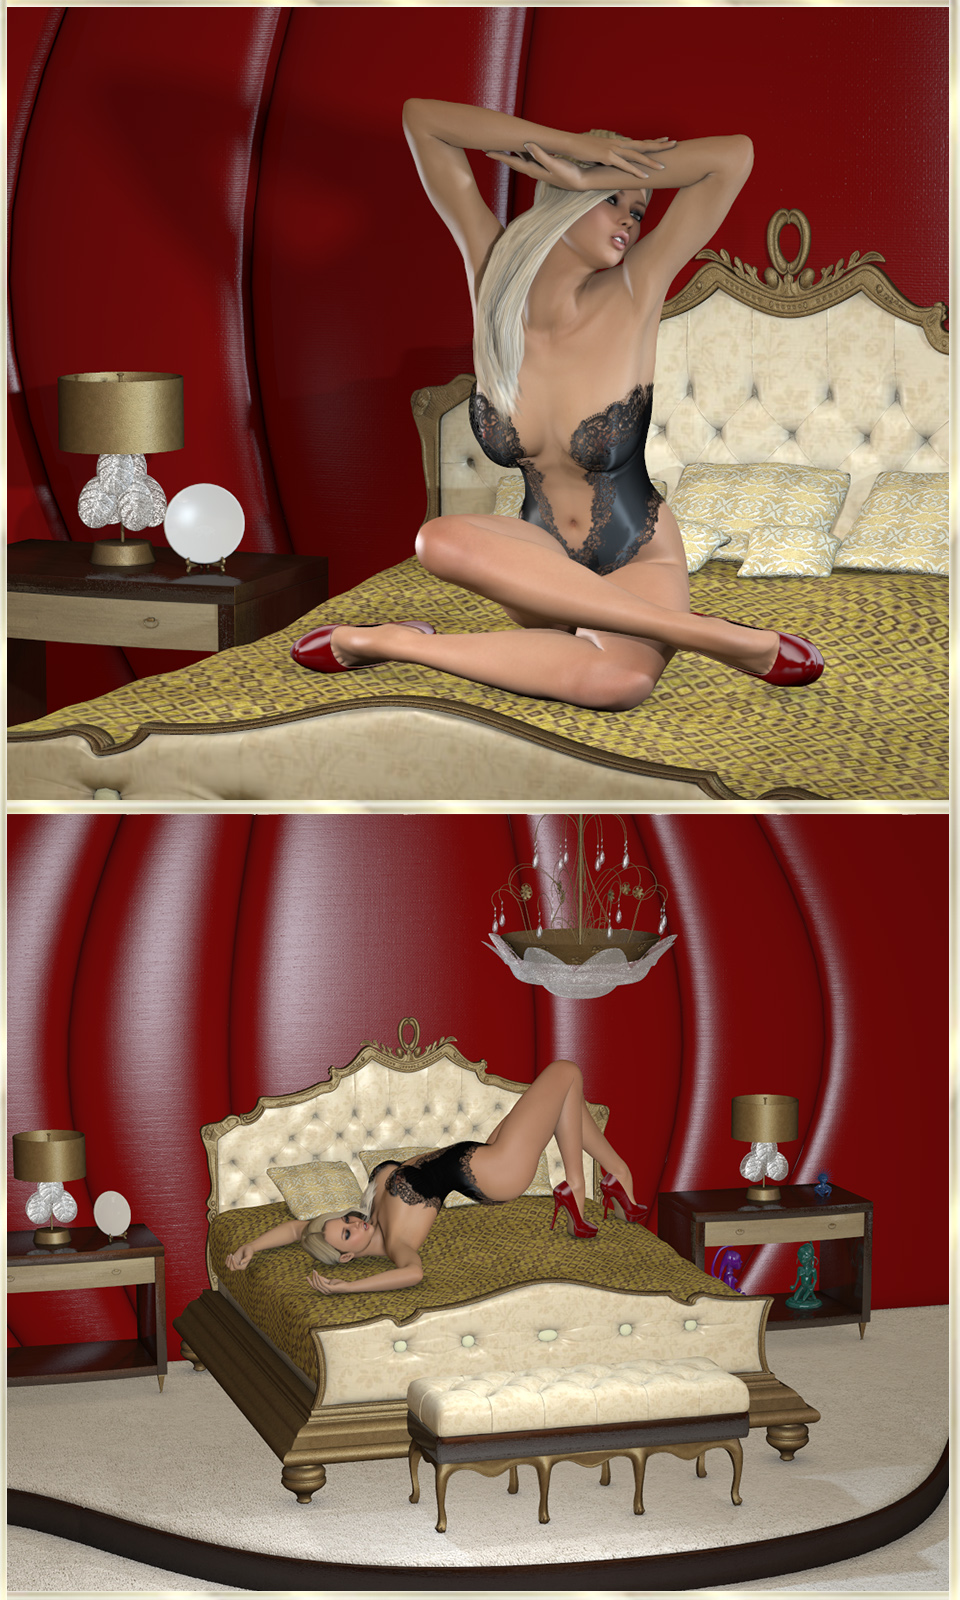 Z Luxuriant Bedroom Poses Of Z Luxuriant Bedroom Poses 3d Figure Essentials 3d Models